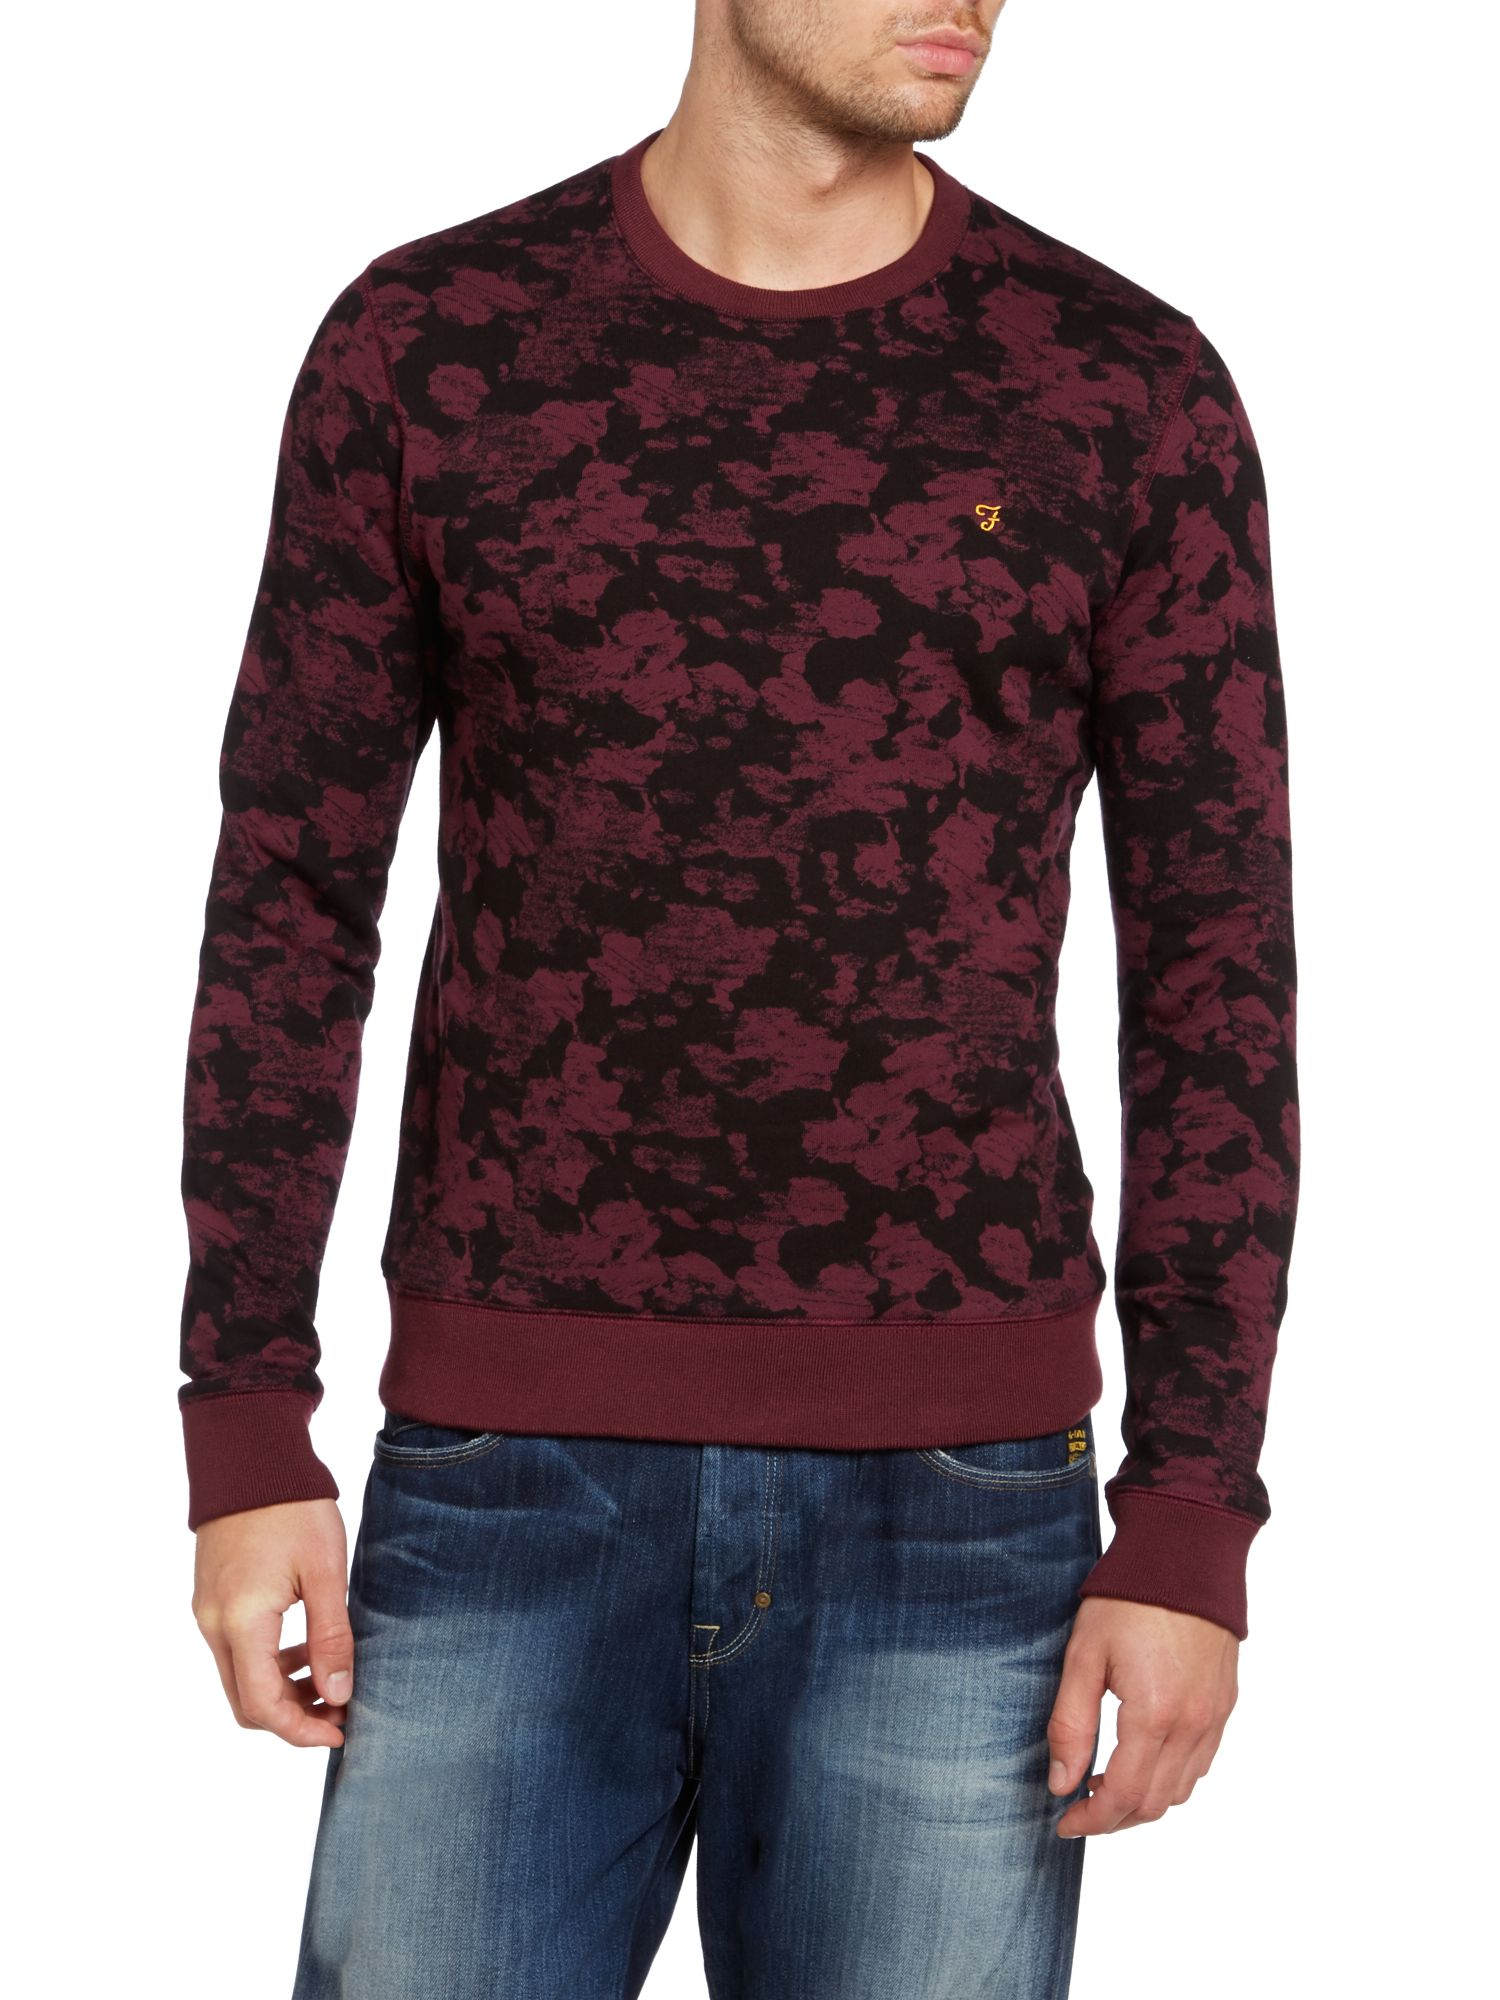 Casby paint print crew neck sweatshirt